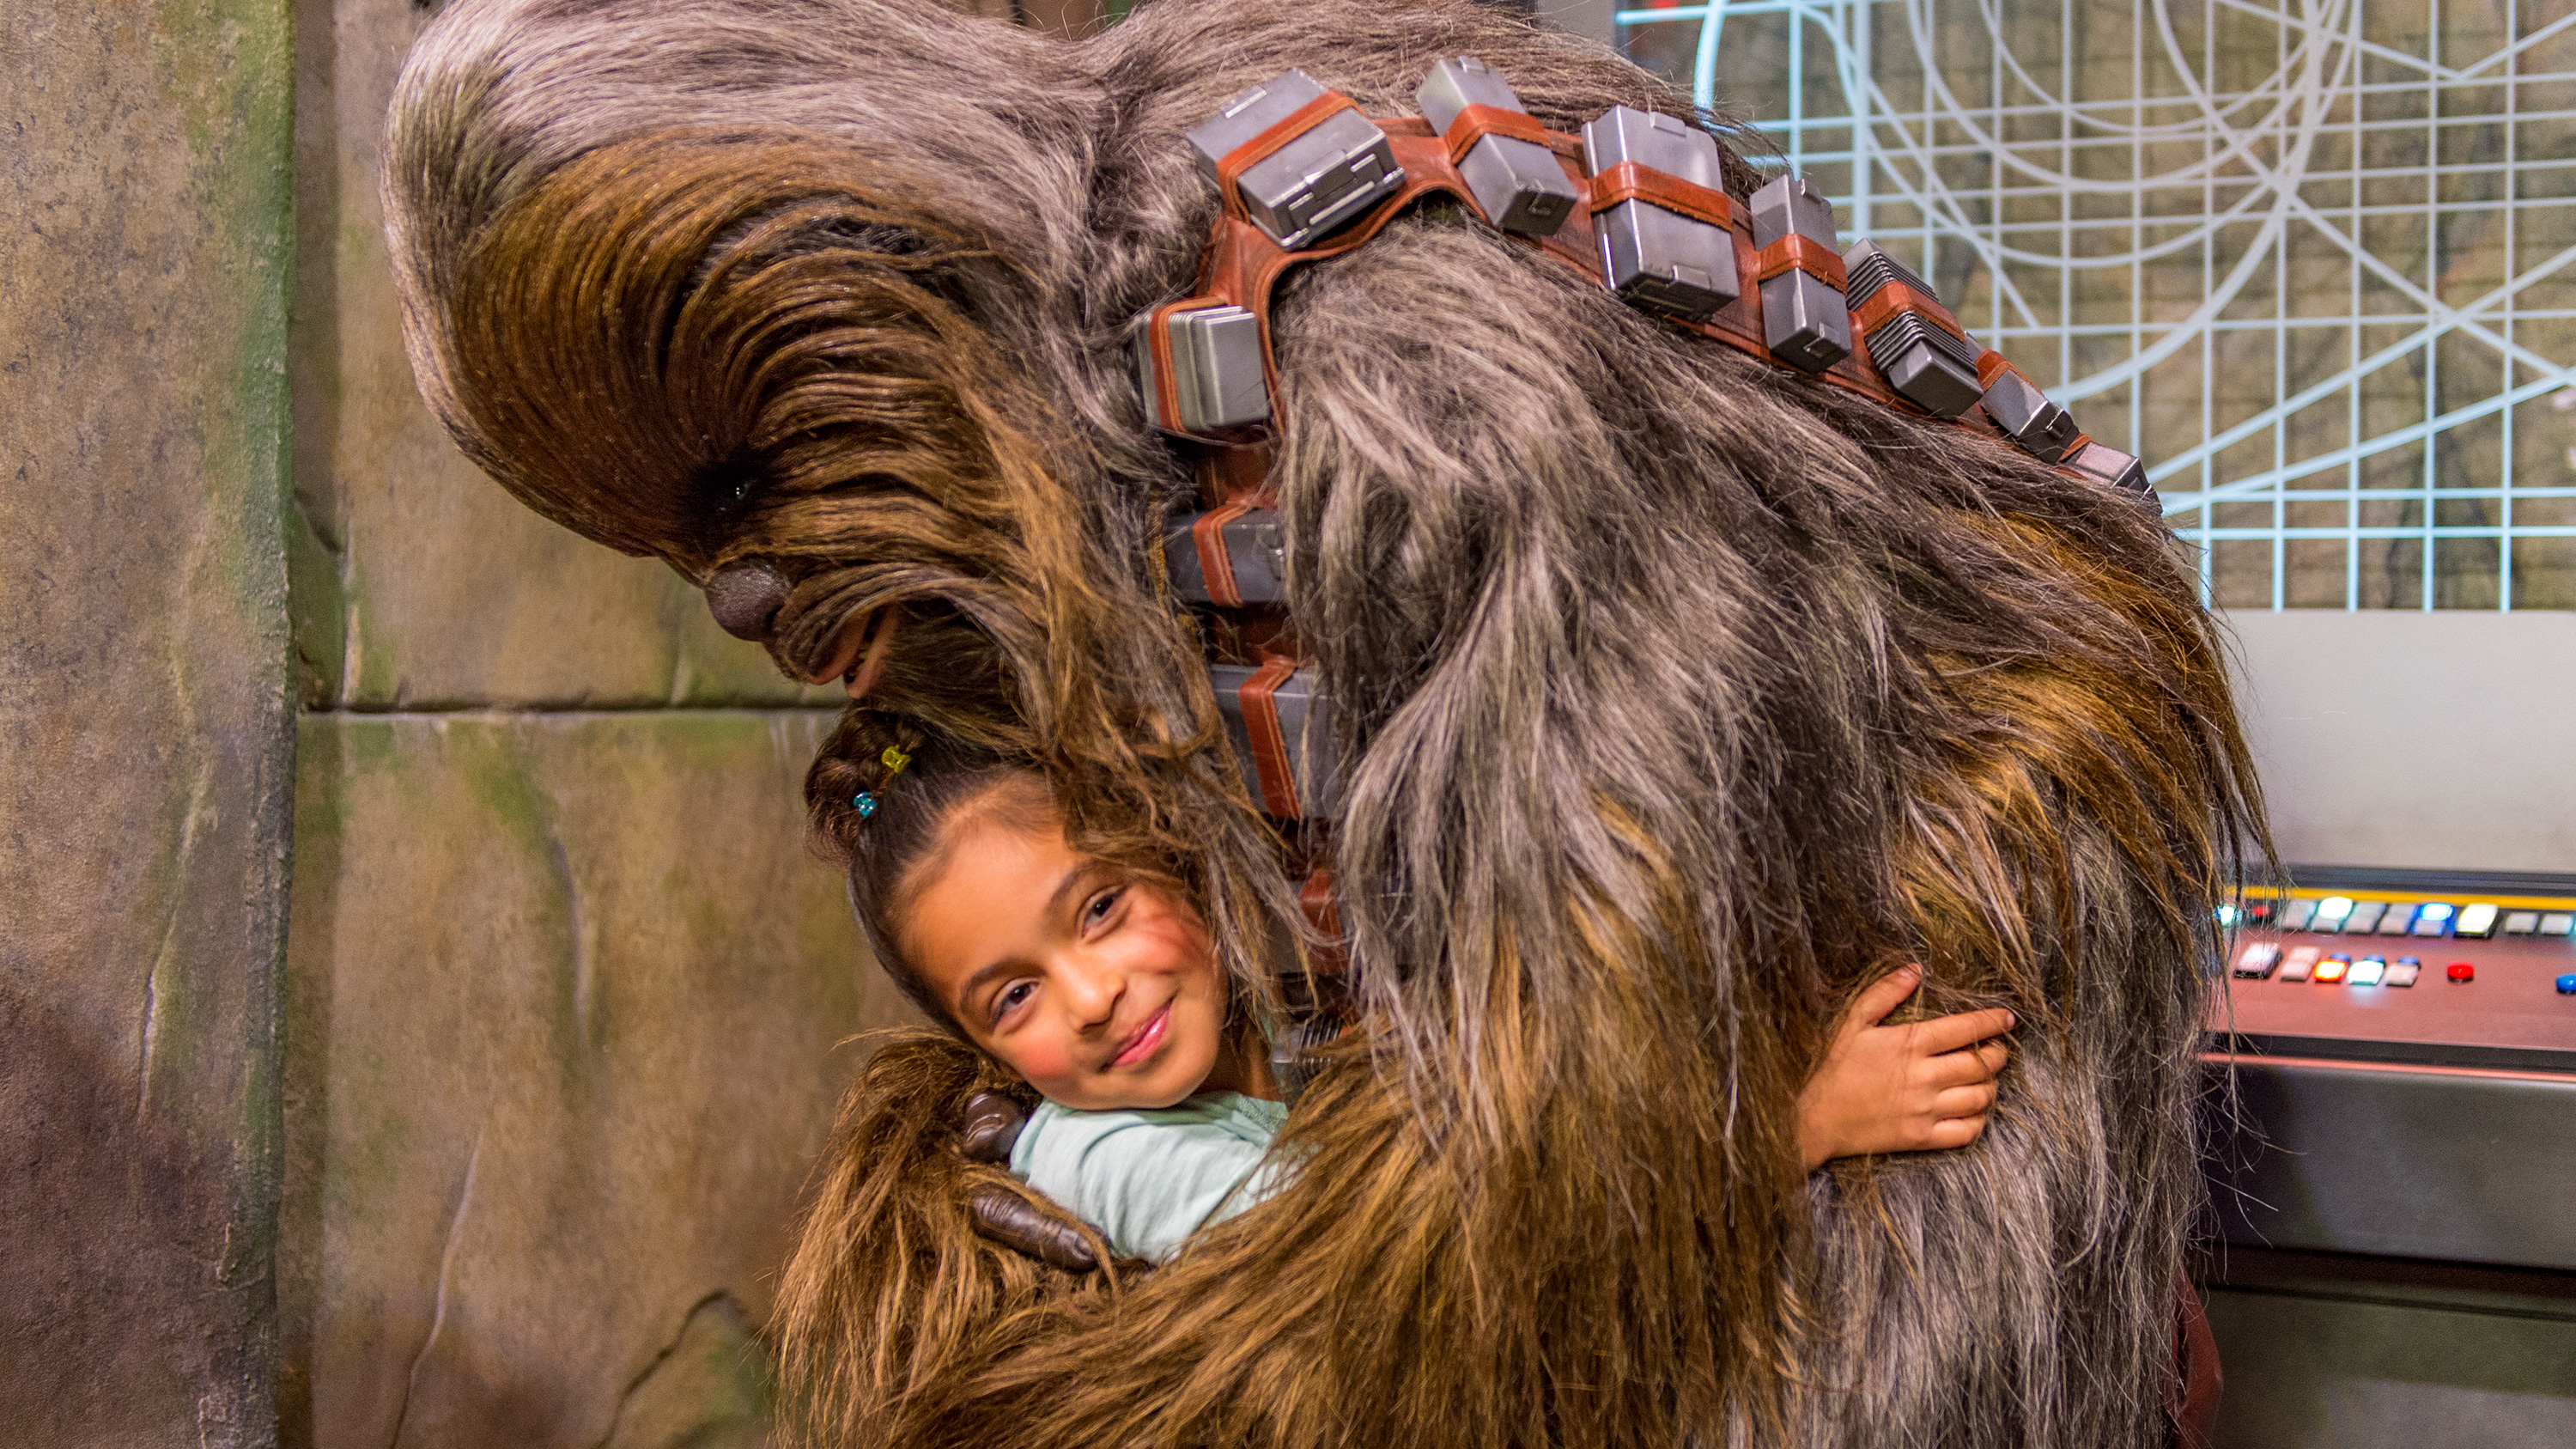 Chewbacca gives a warm hug to a young girl at a Star Wars meet-and-greet at Walt Disney World Resort